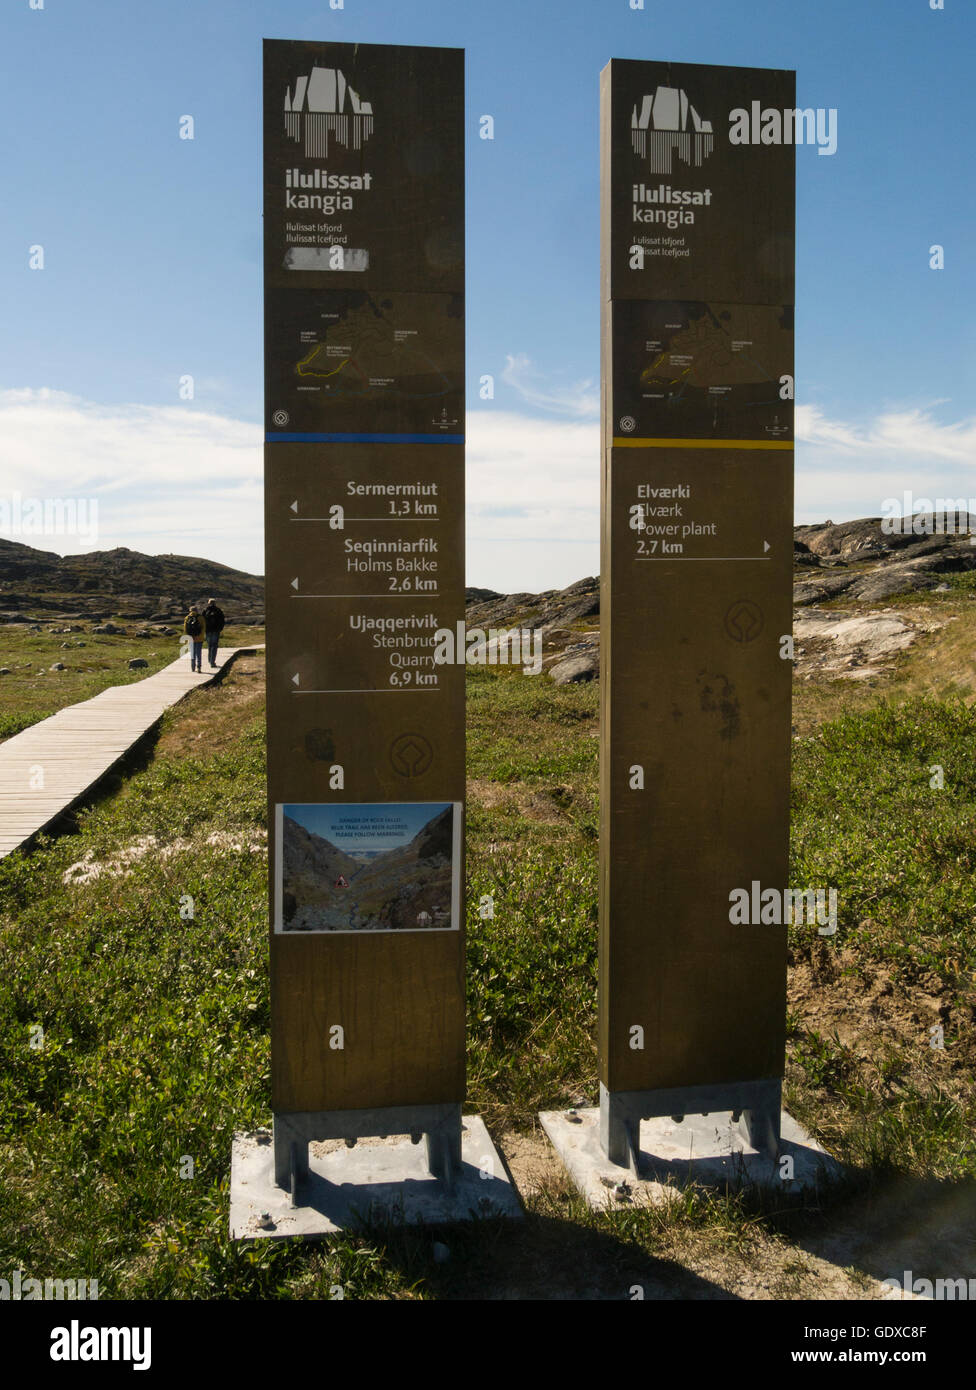 Information boards at start of a boardwalk to Ilulissat icefjord is a town in Qaasuitsup municipality in western - Stock Image